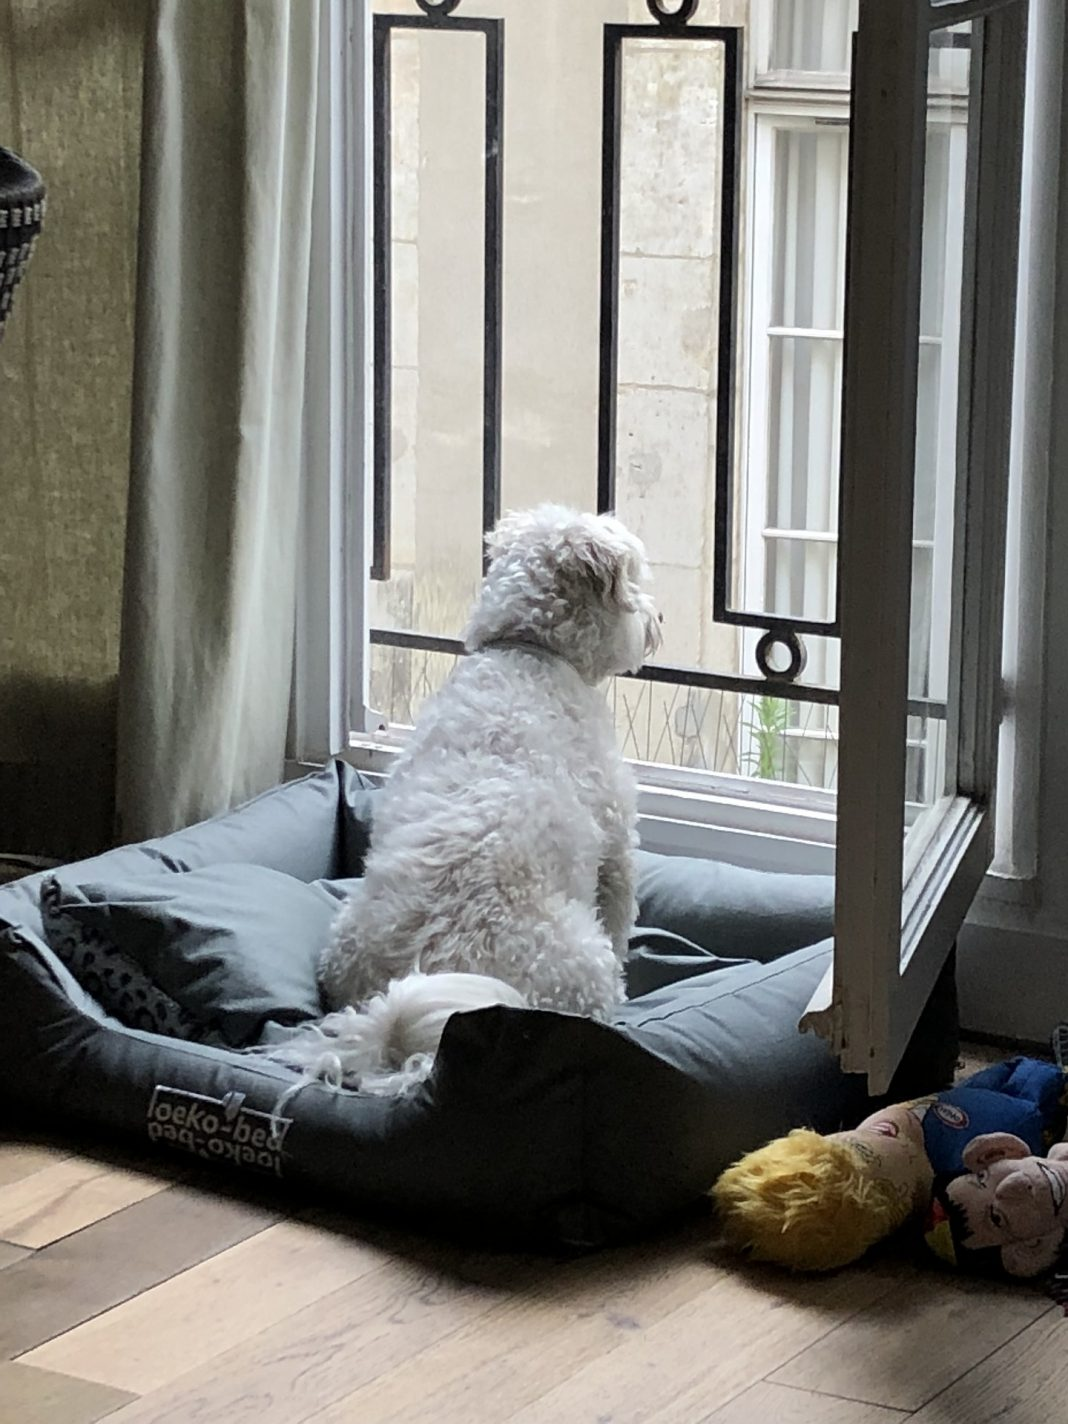 Dog watching out of window